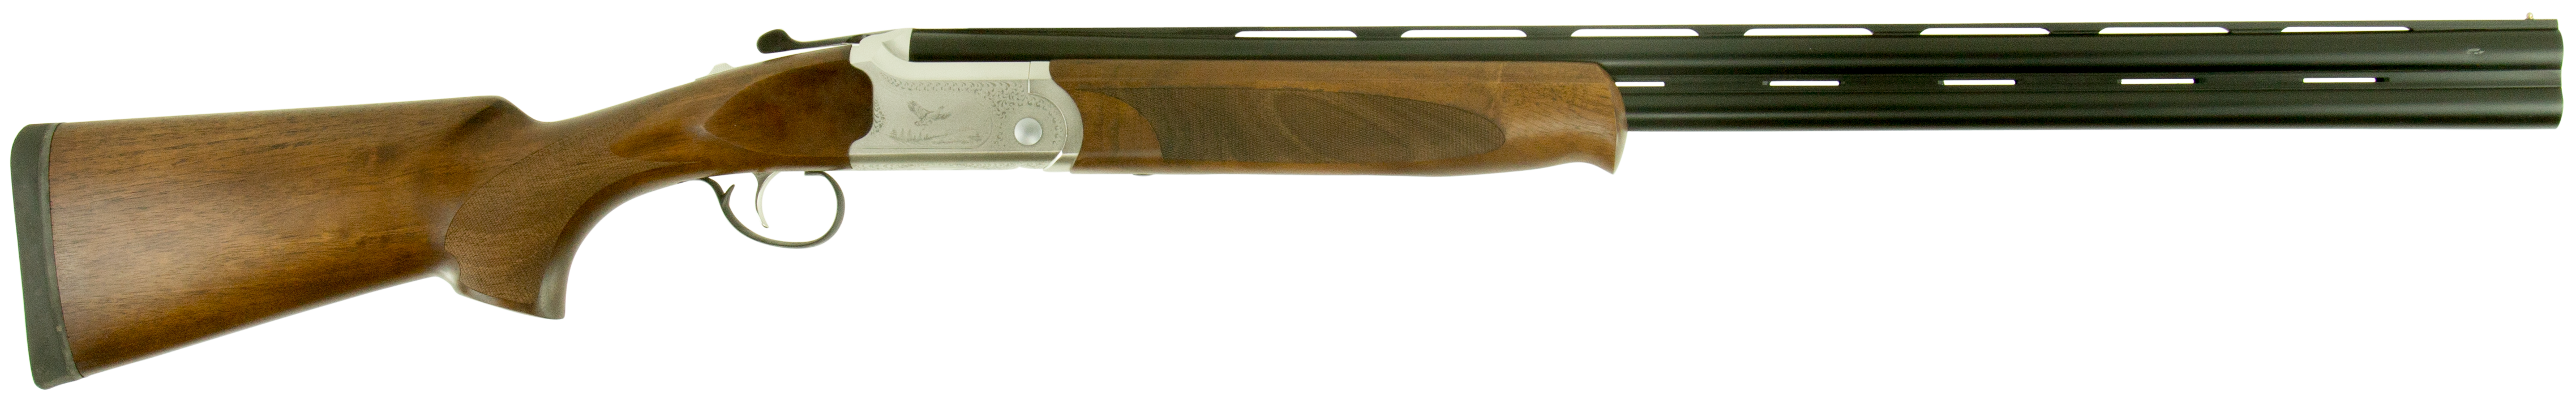 ATI GKOF20SVY Cavalry Youth Over/Under 20 Gauge 26